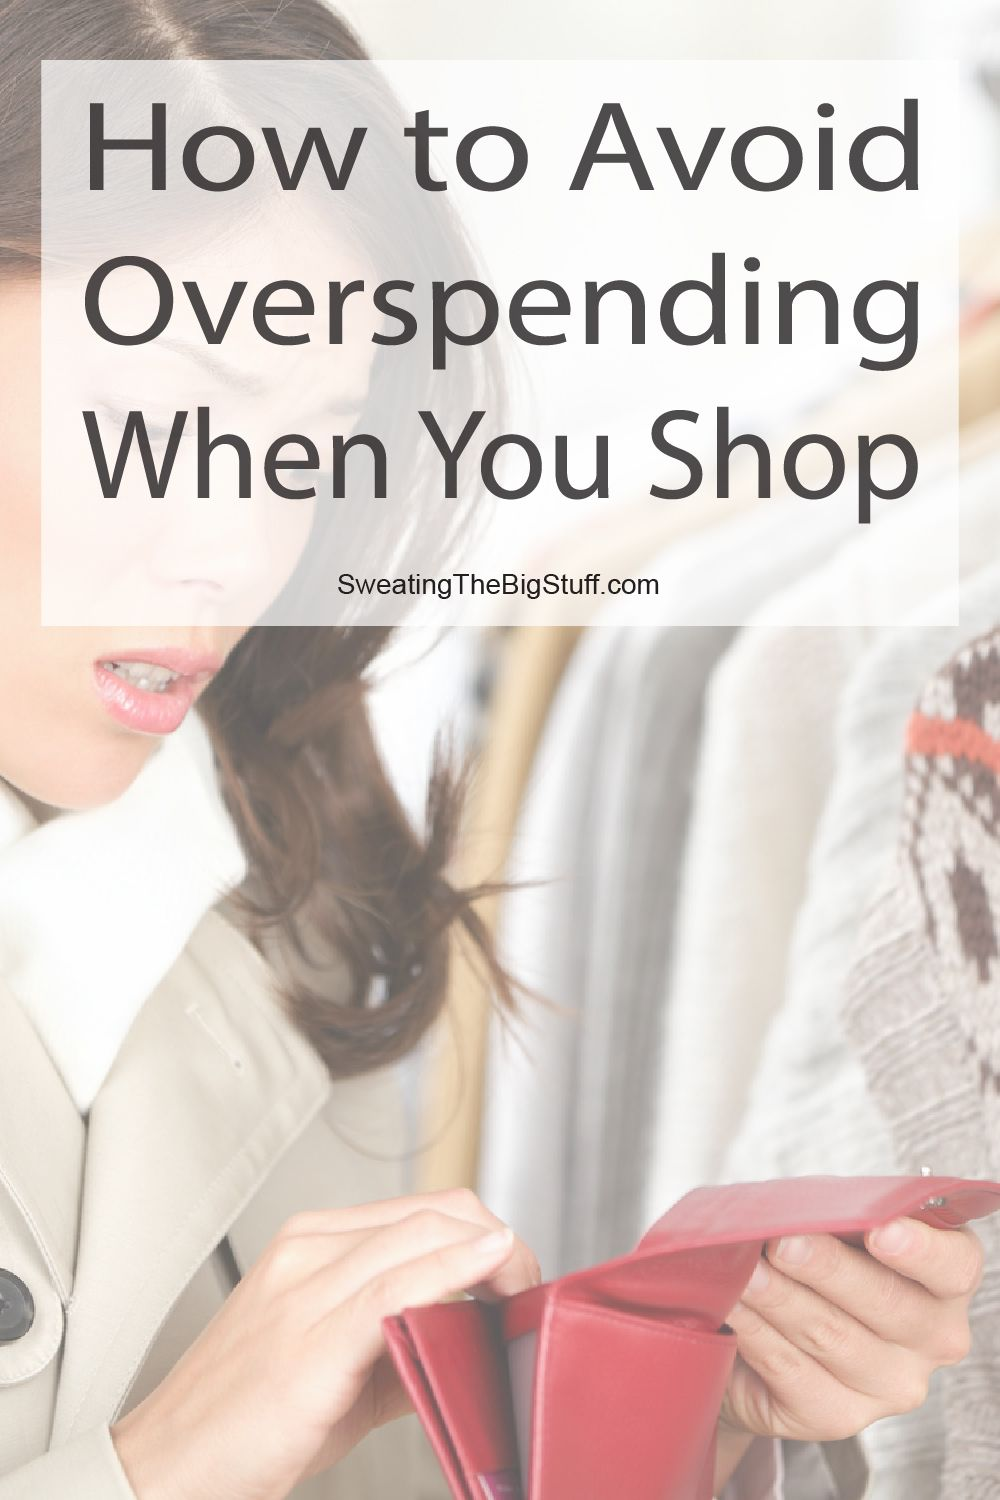 How to Avoid Overspending When You Shop